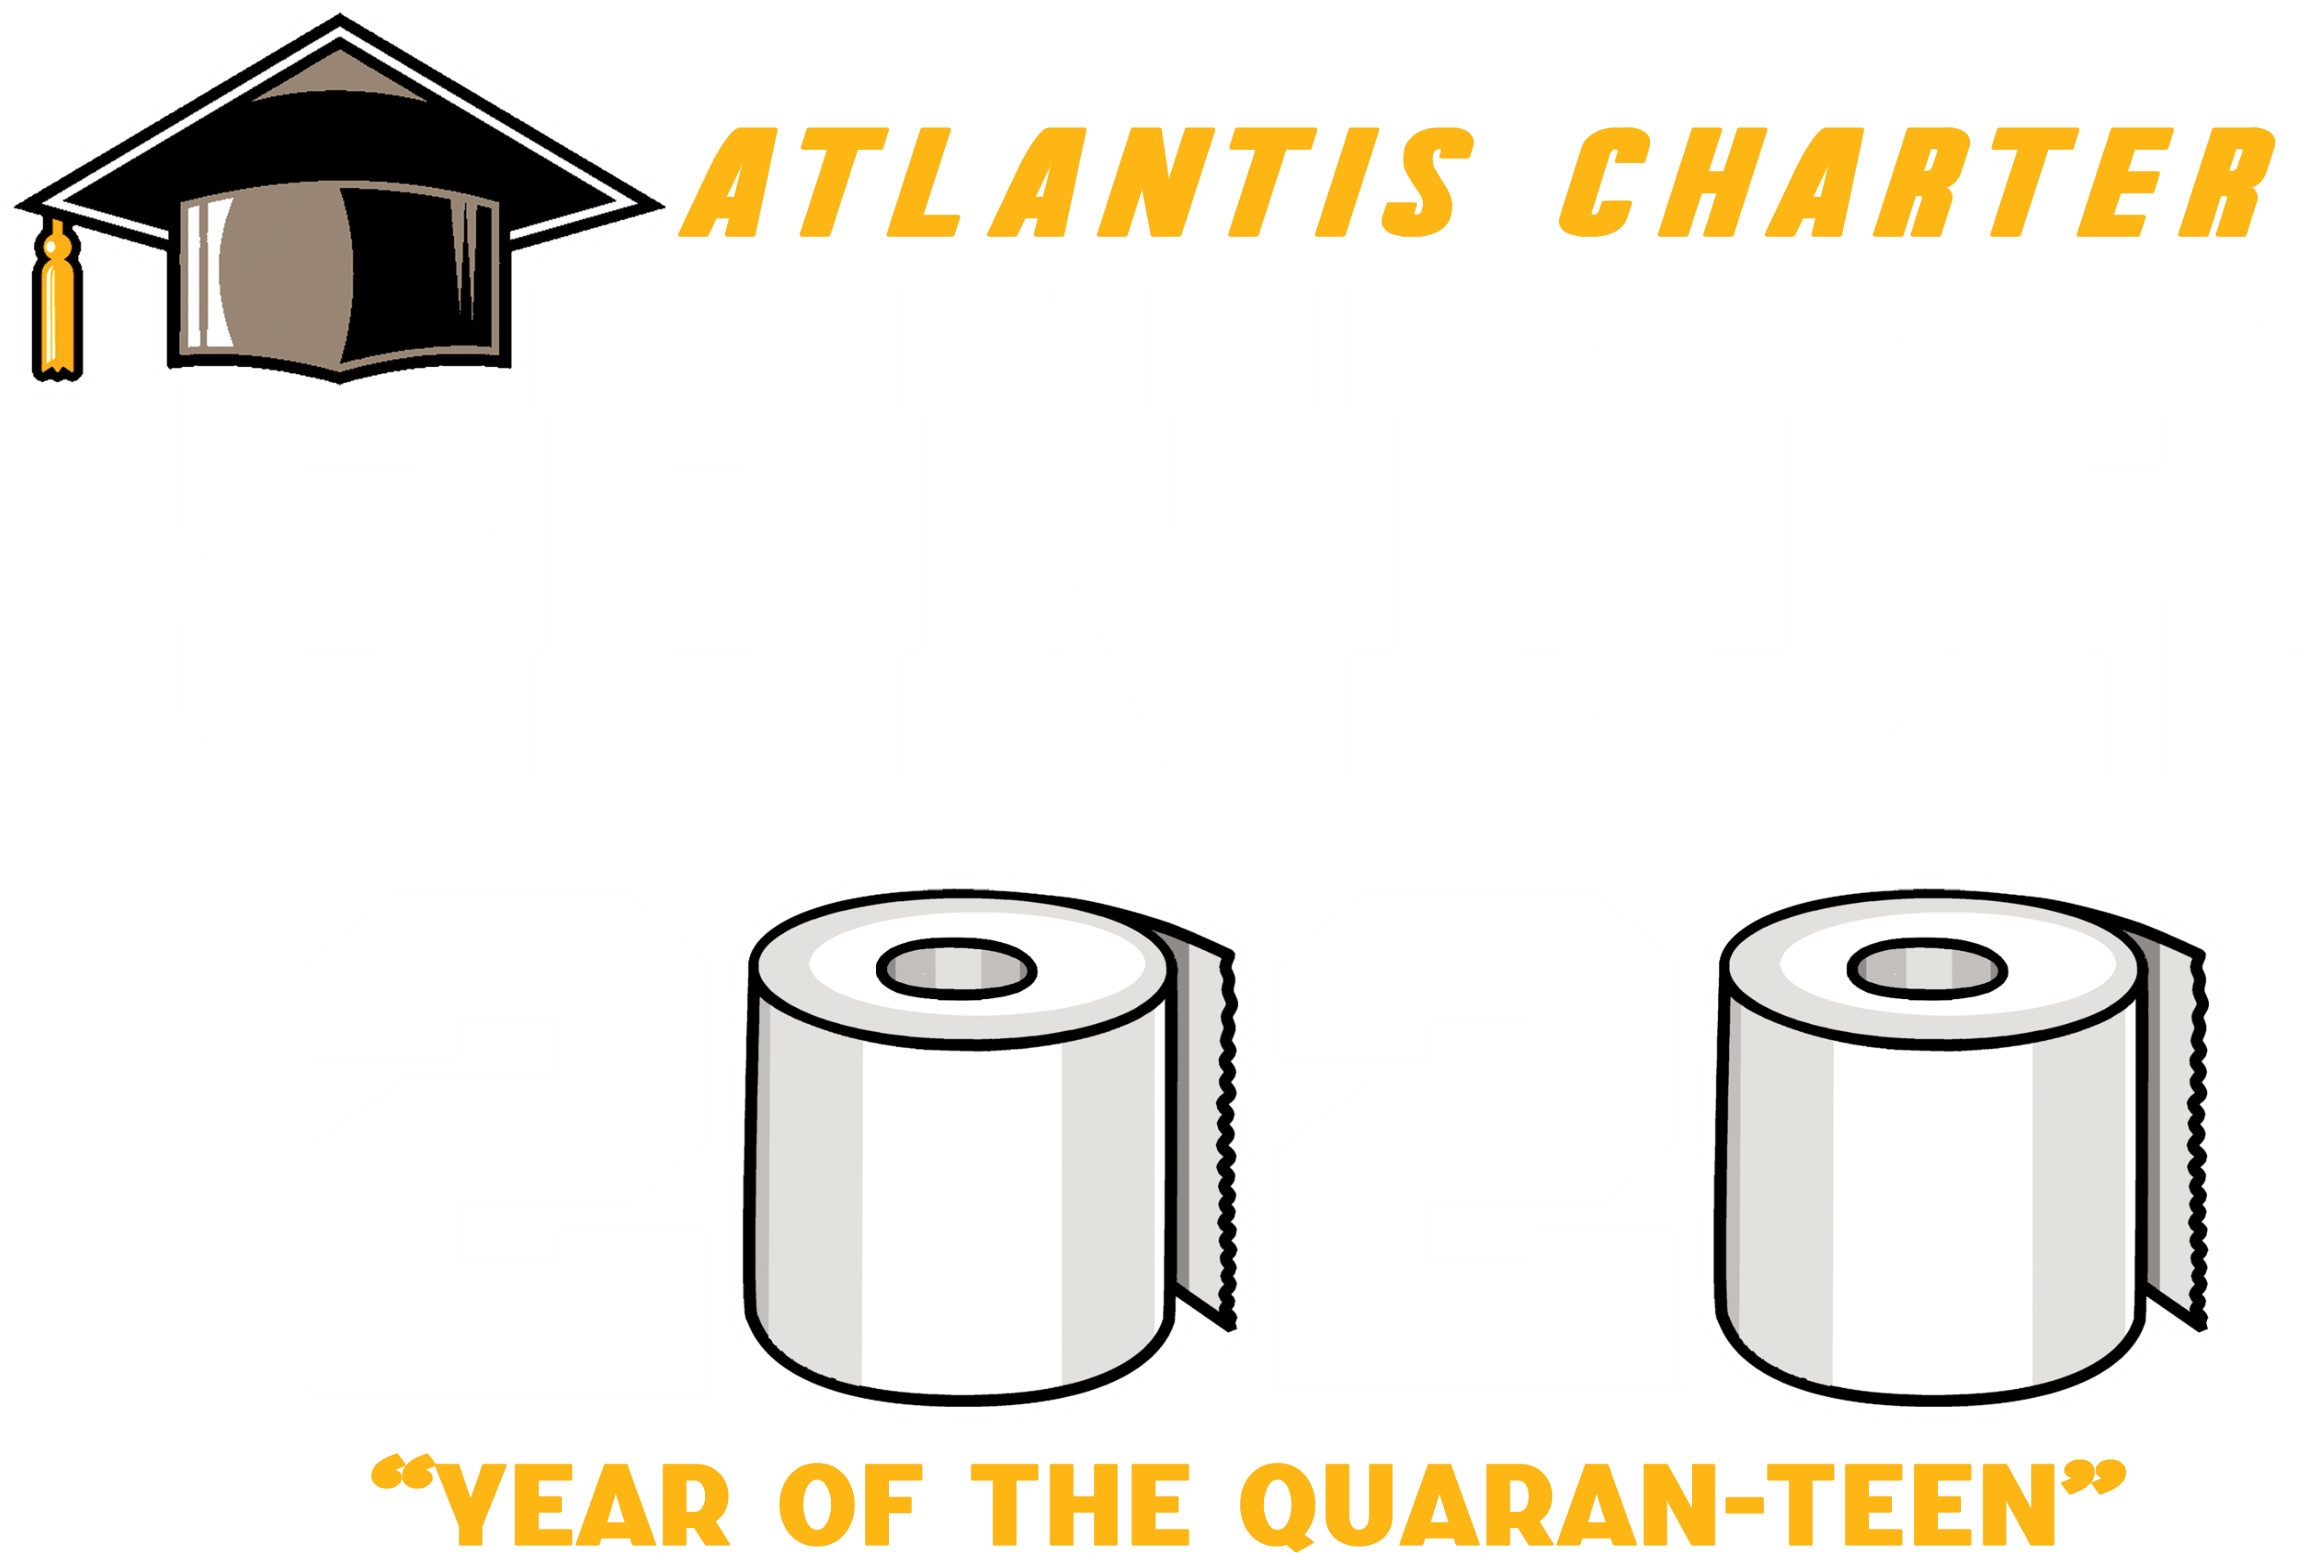 Atlantis Charter Quaran_TEEN Senior 2020